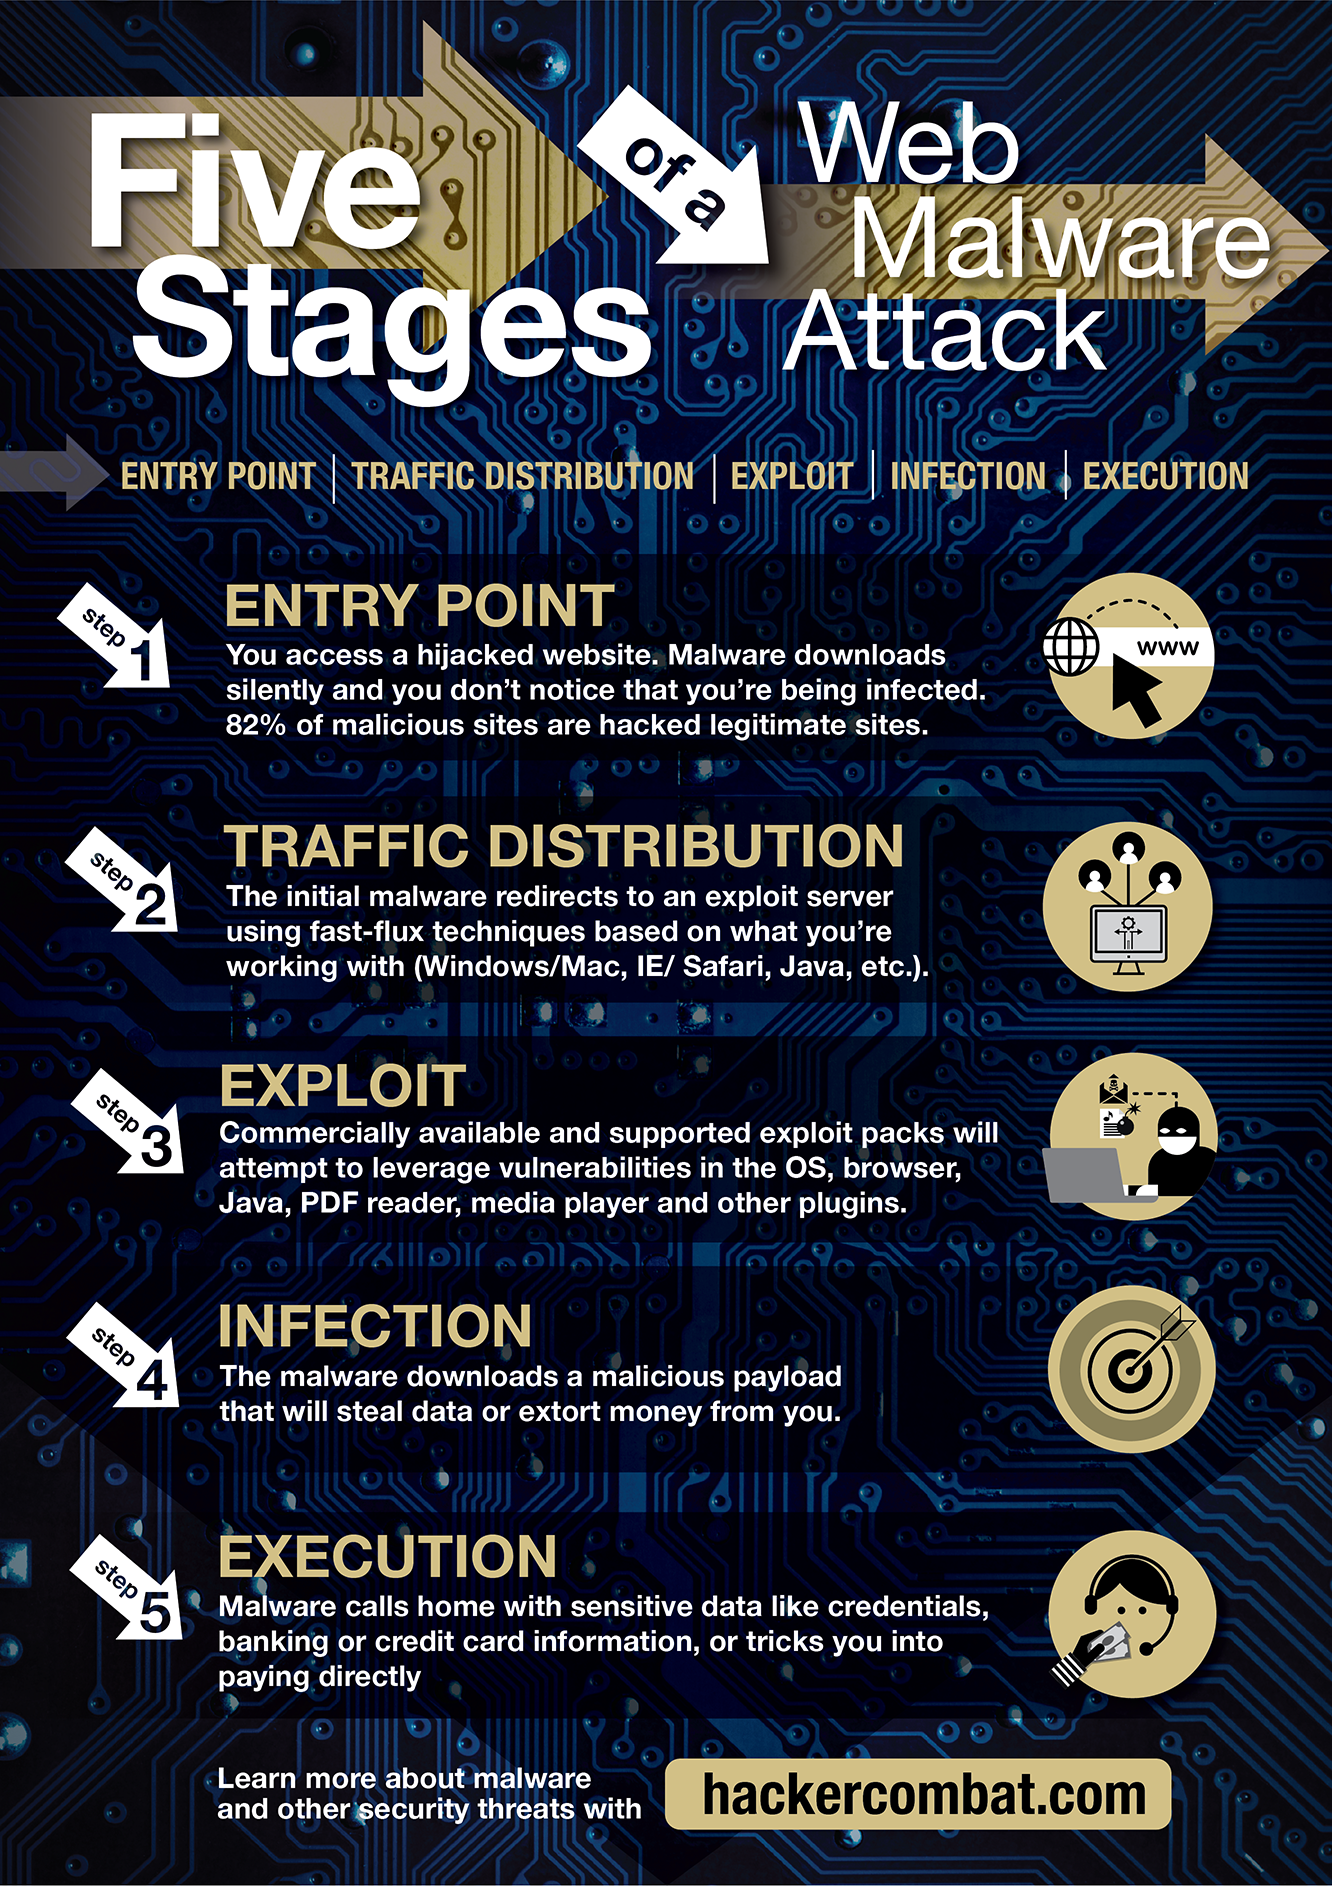 Web Malware Attack: The Different Stages [Infographic]